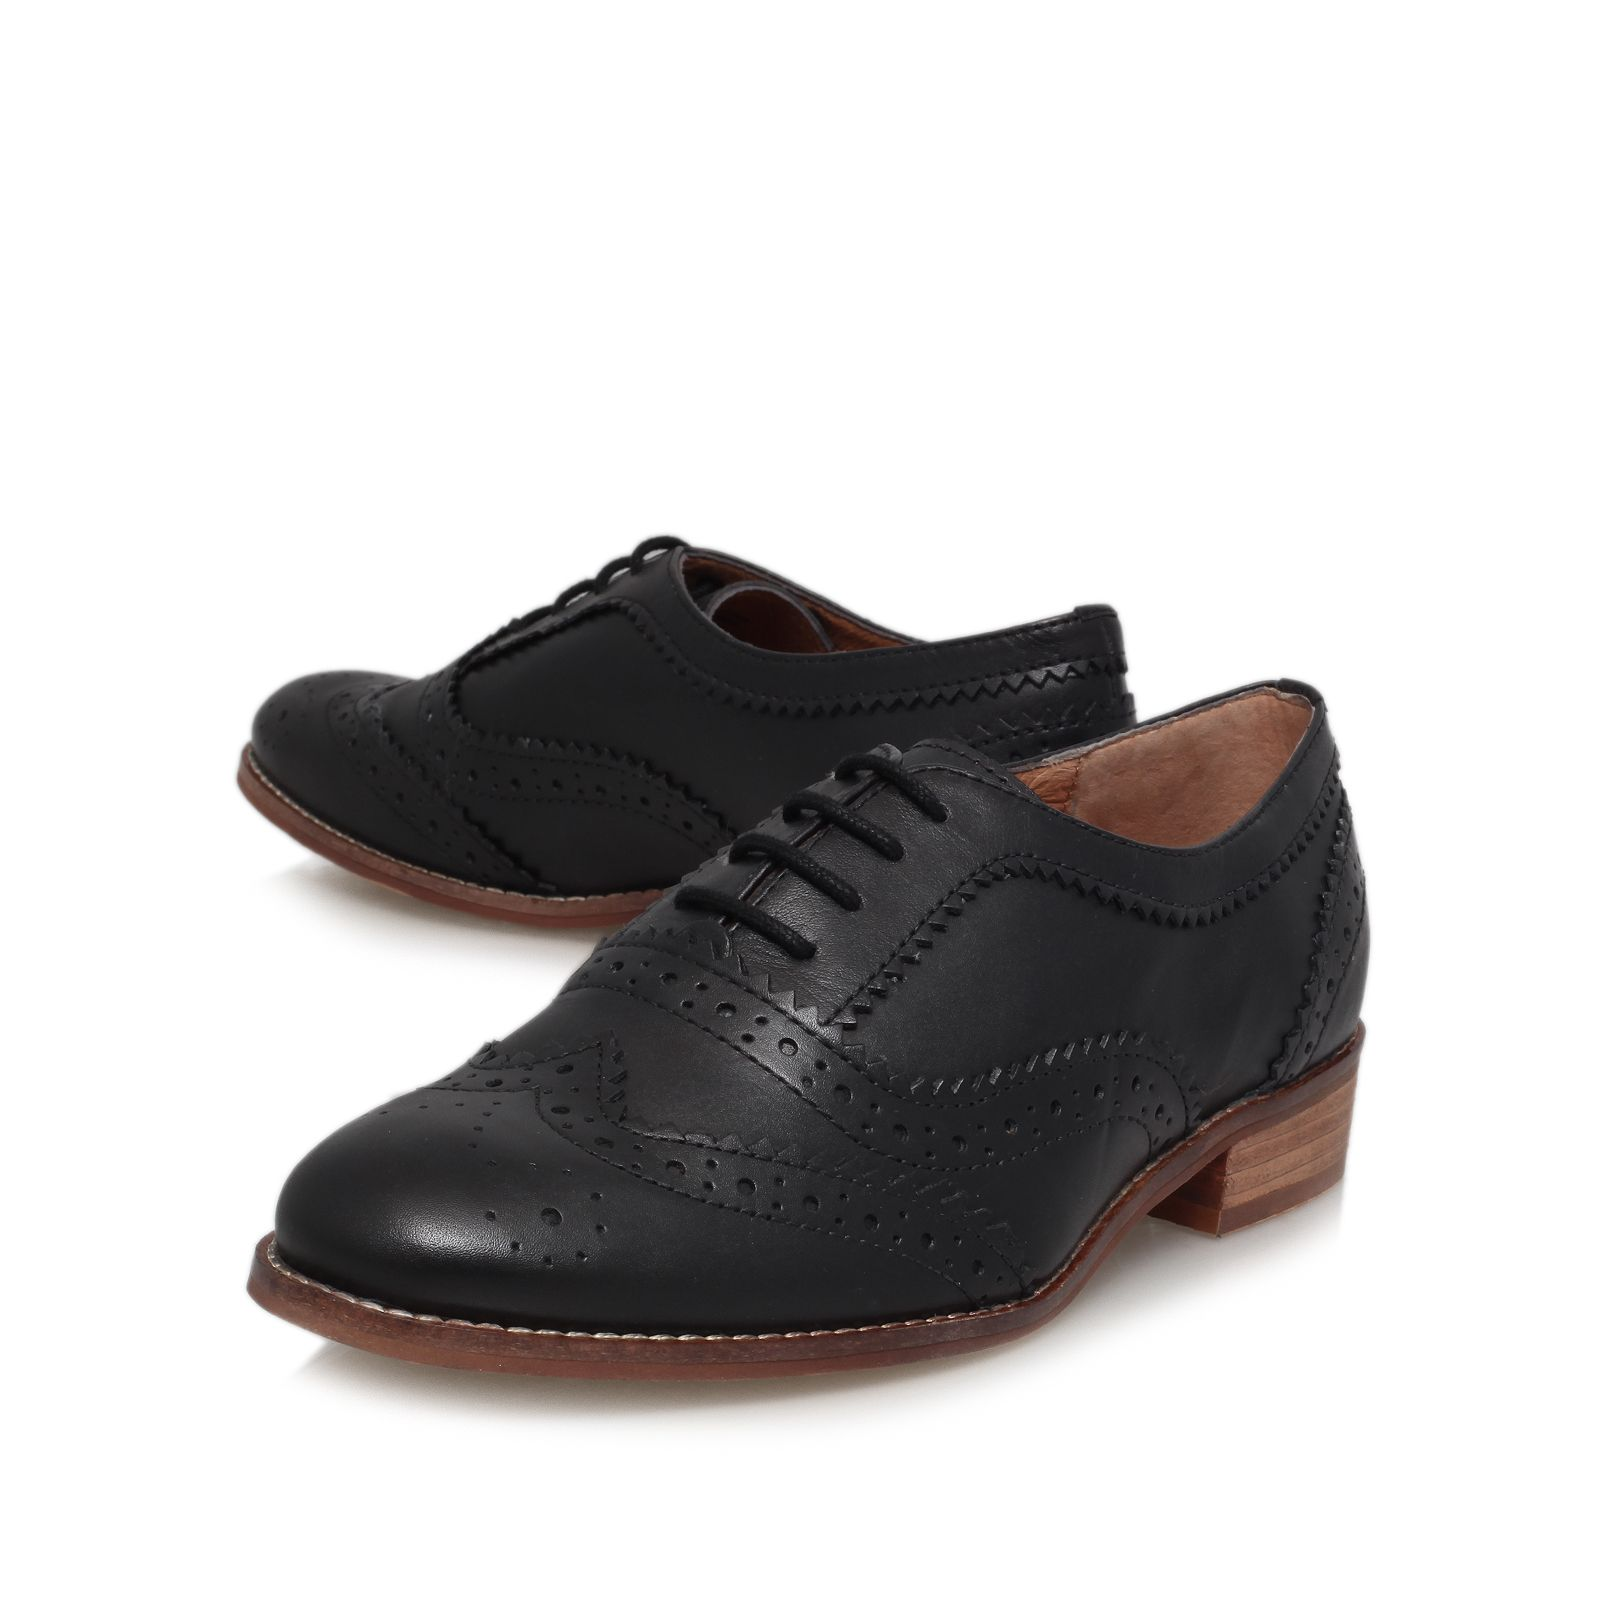 Lily low heel brogues